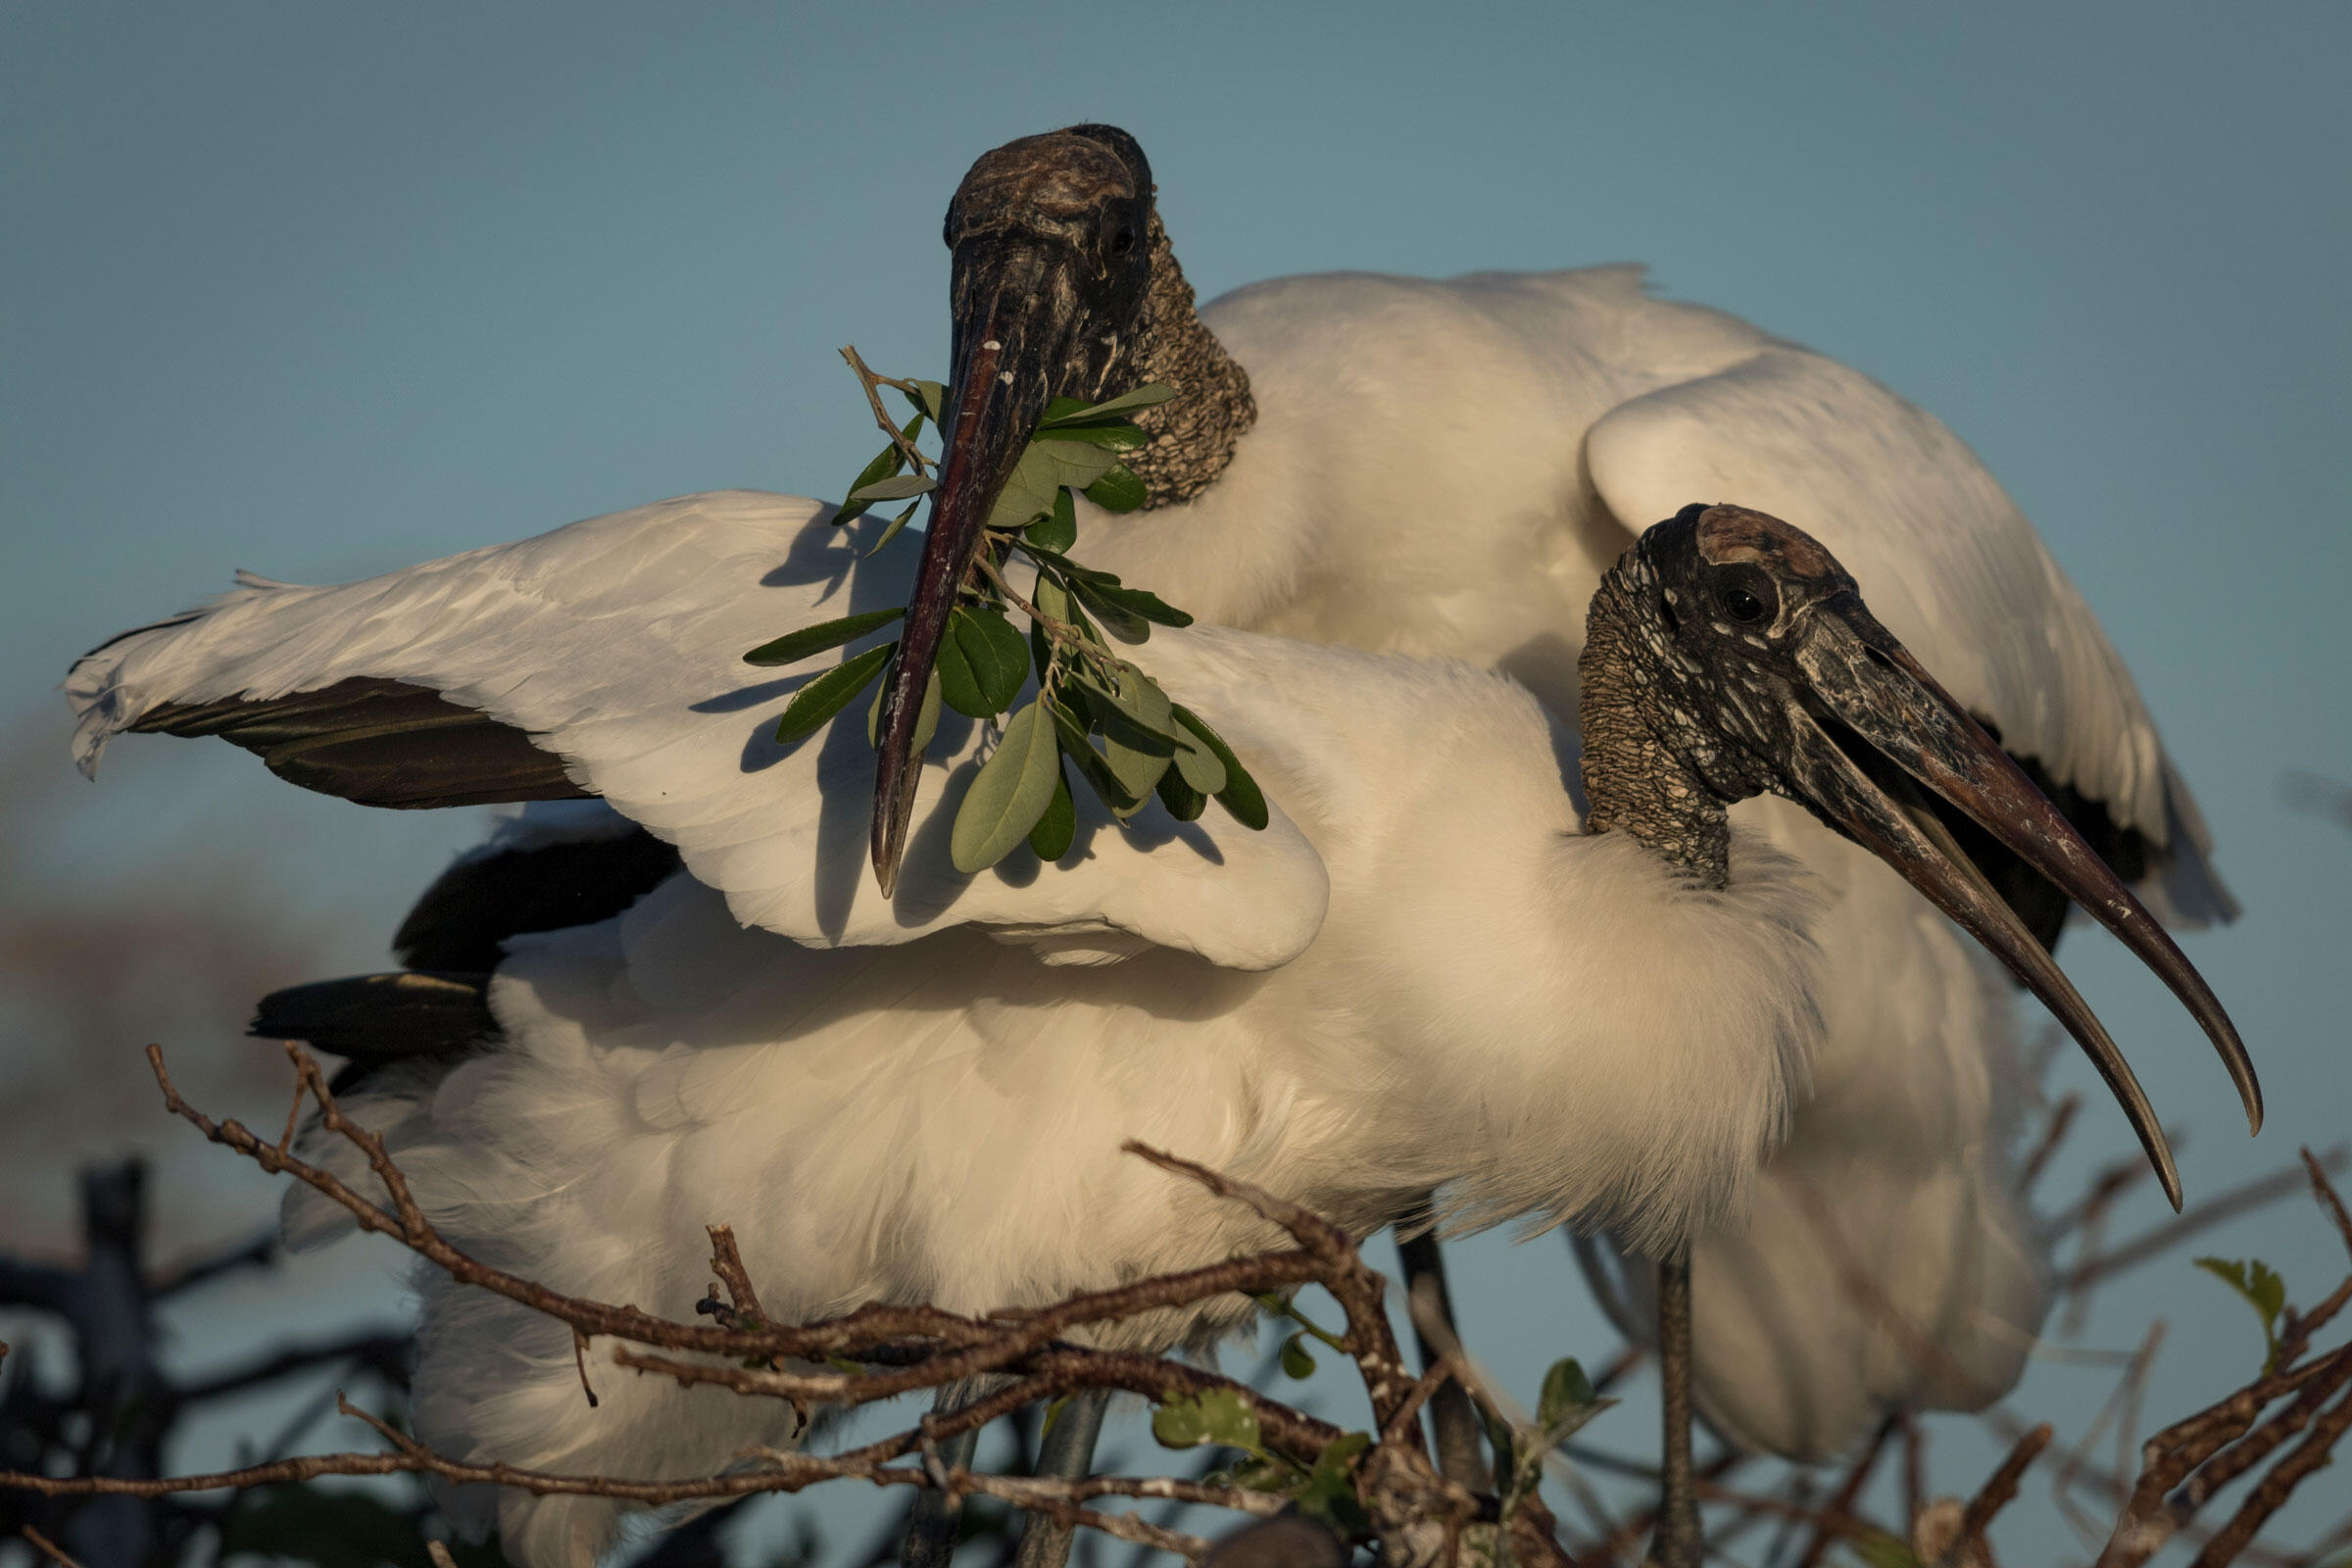 A mating pair of Wood Storks work on their nest in the Wakodahatchee Wetlands. Mac Stone